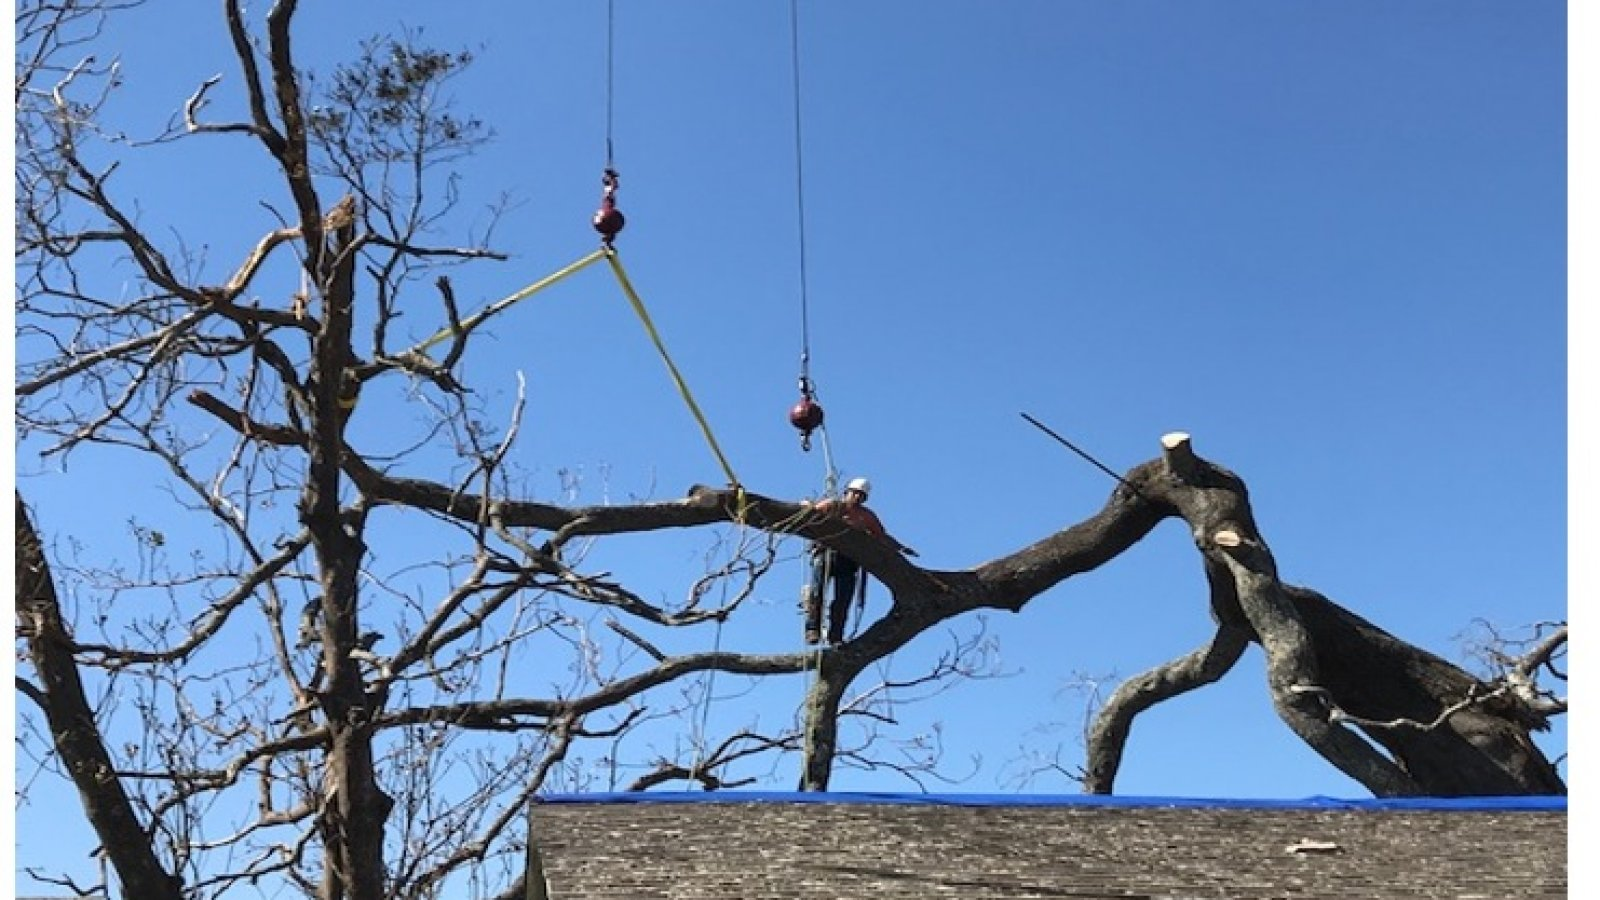 Removal of Hazardous Live Oak using Tandem Cranes